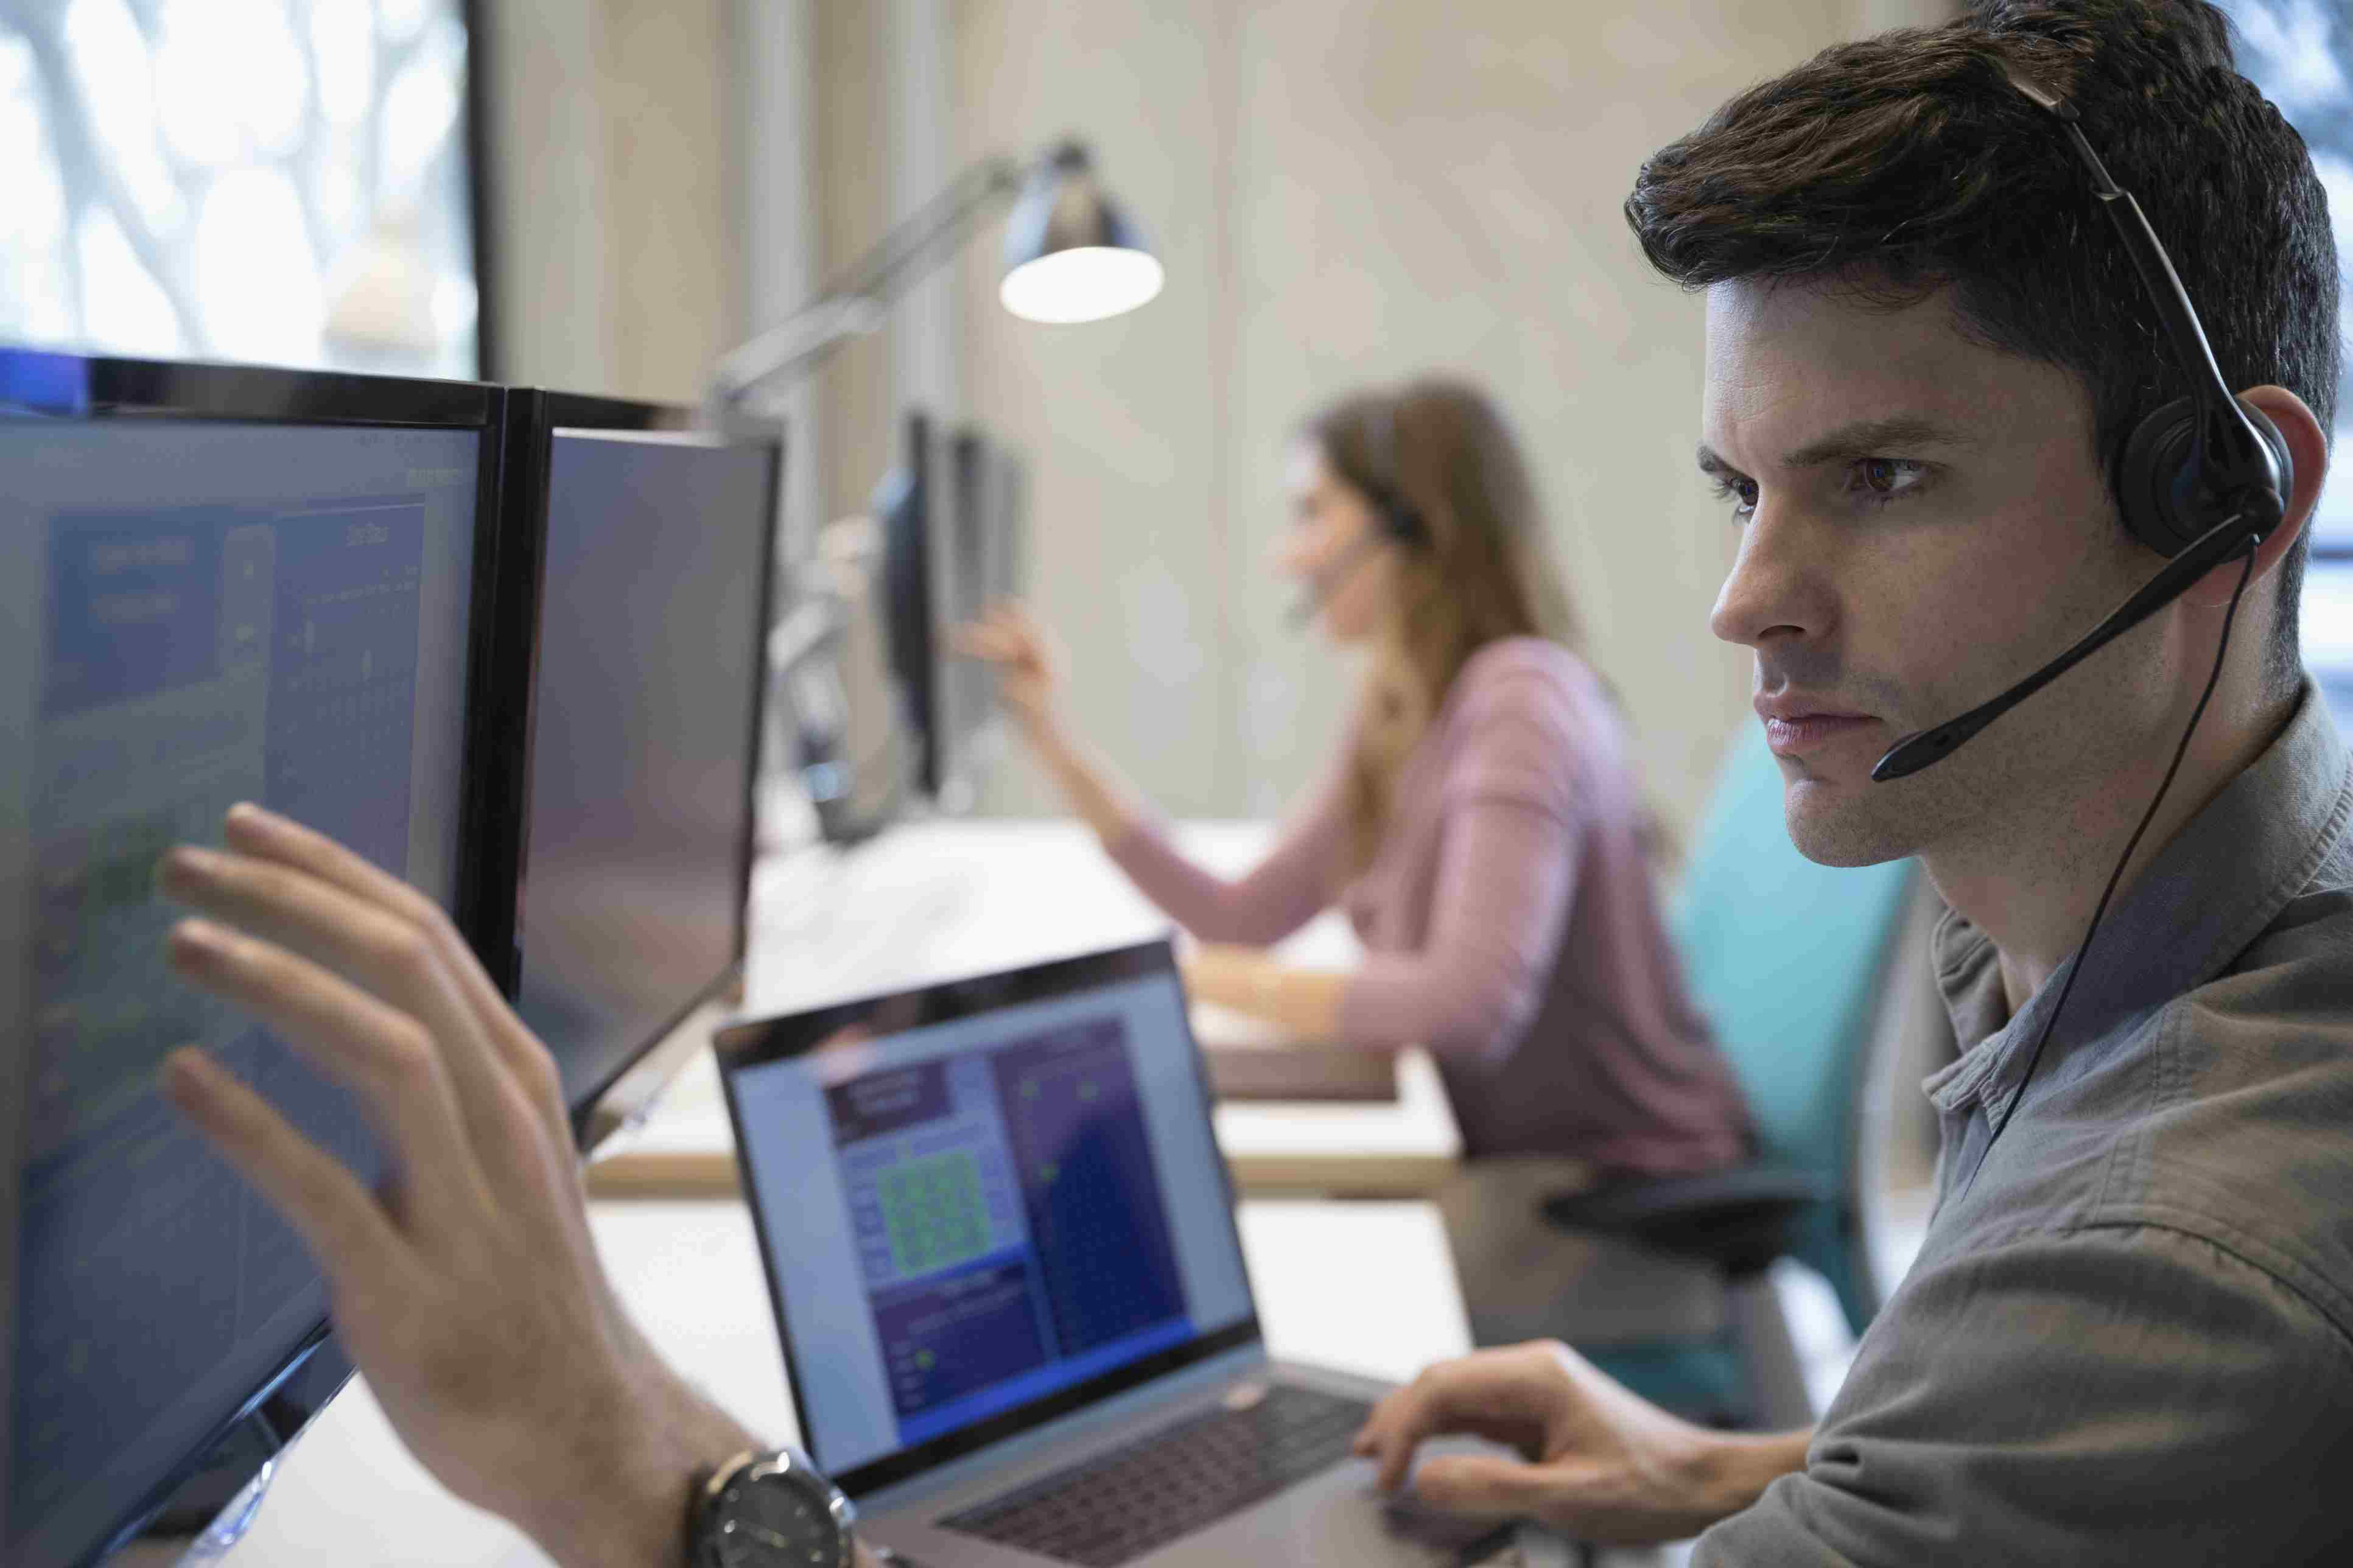 Technical support operator with headset working at laptop and computer